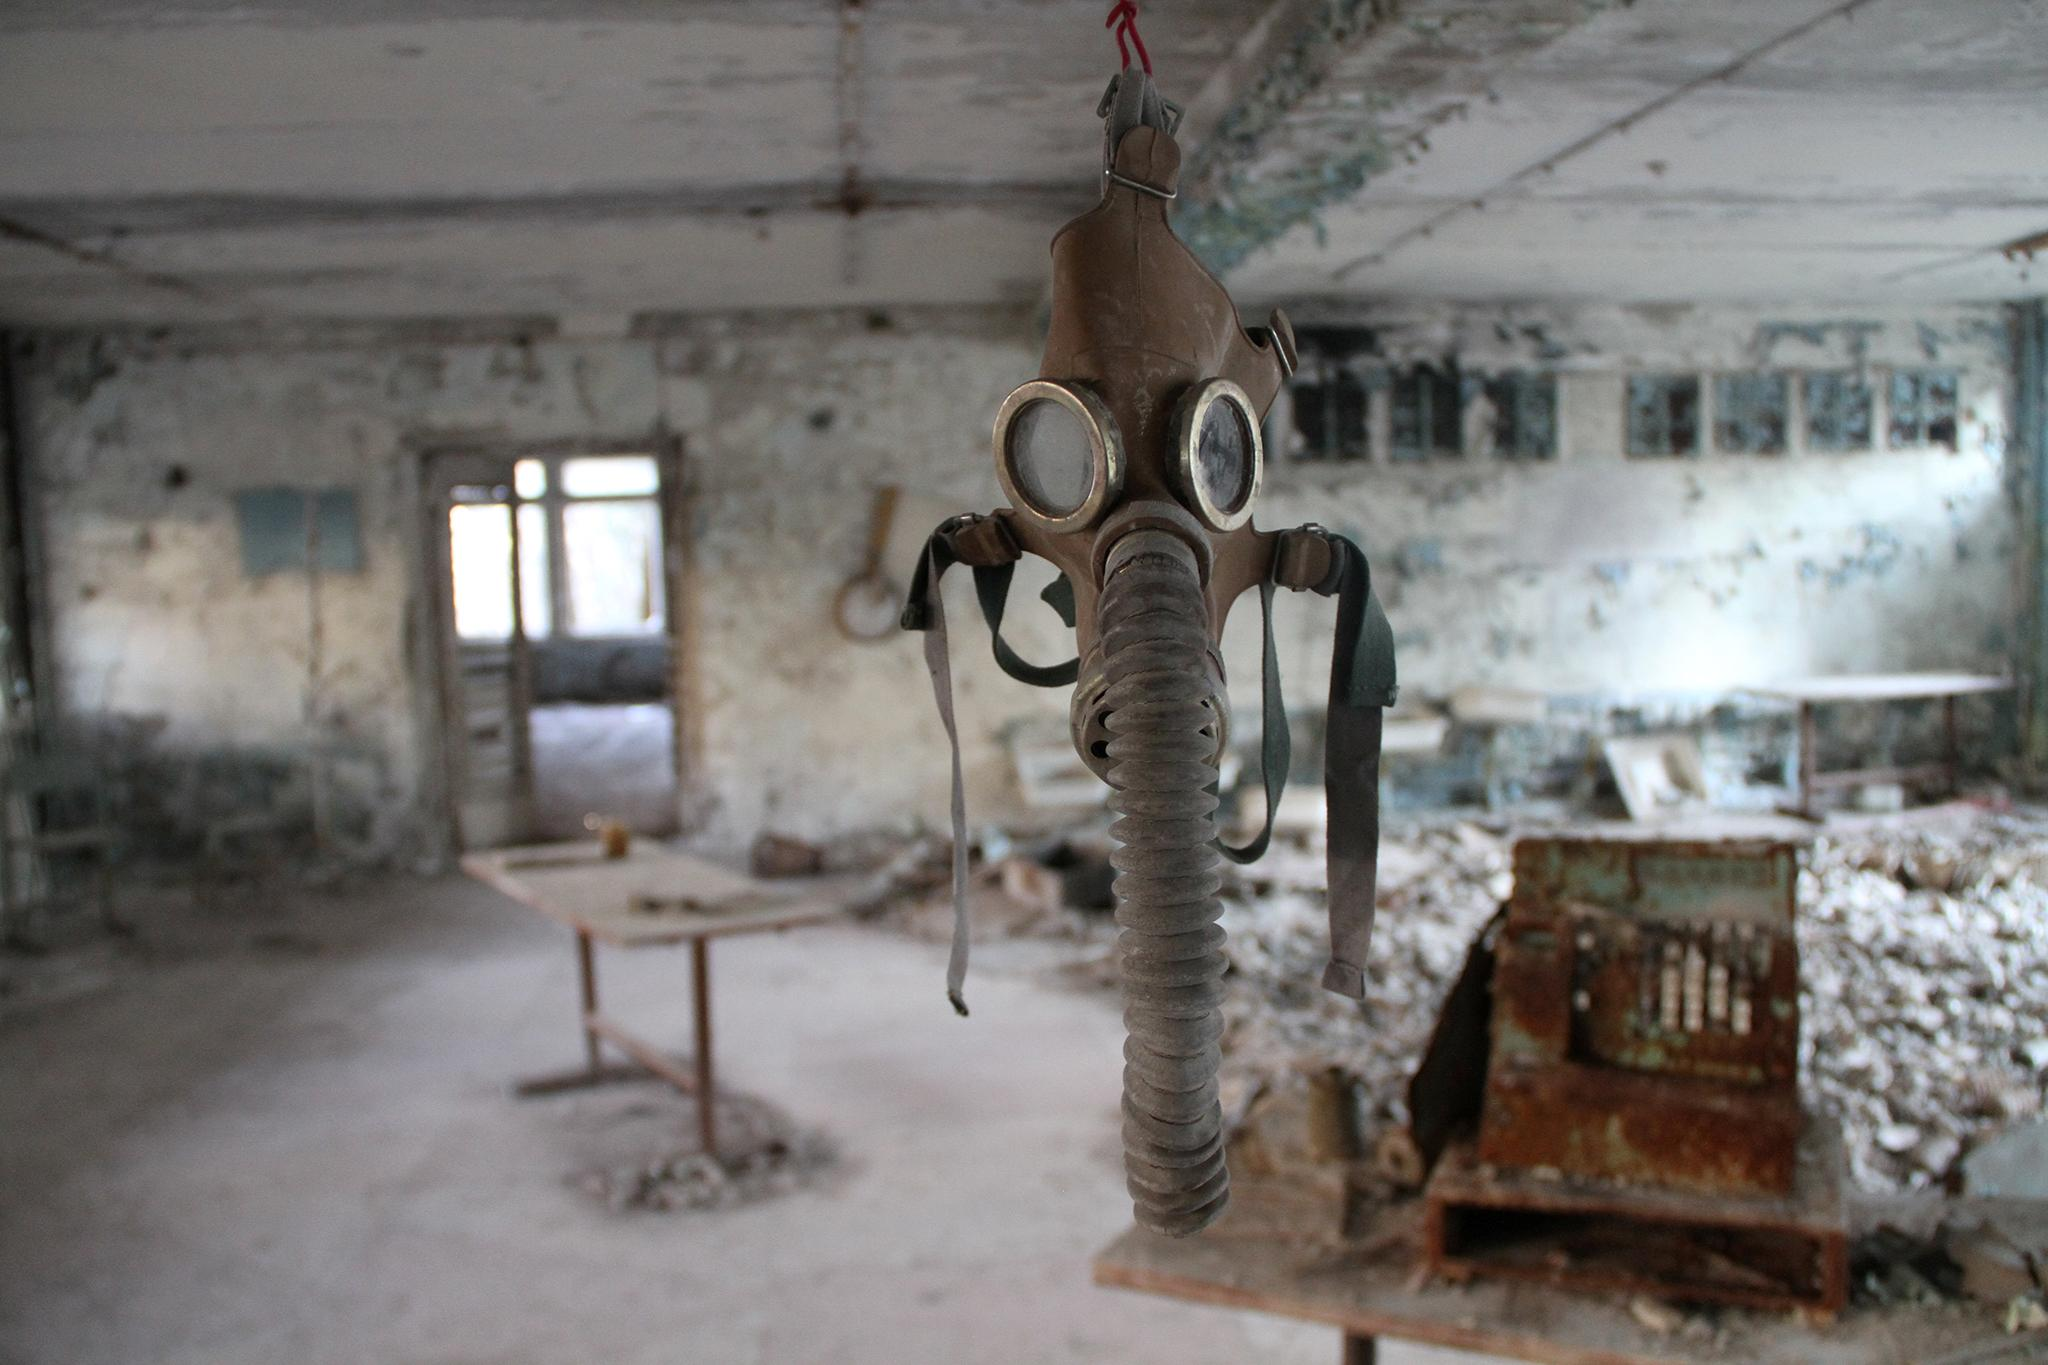 Chernobyl: Photos show illegal urban tours around abandoned nuclear